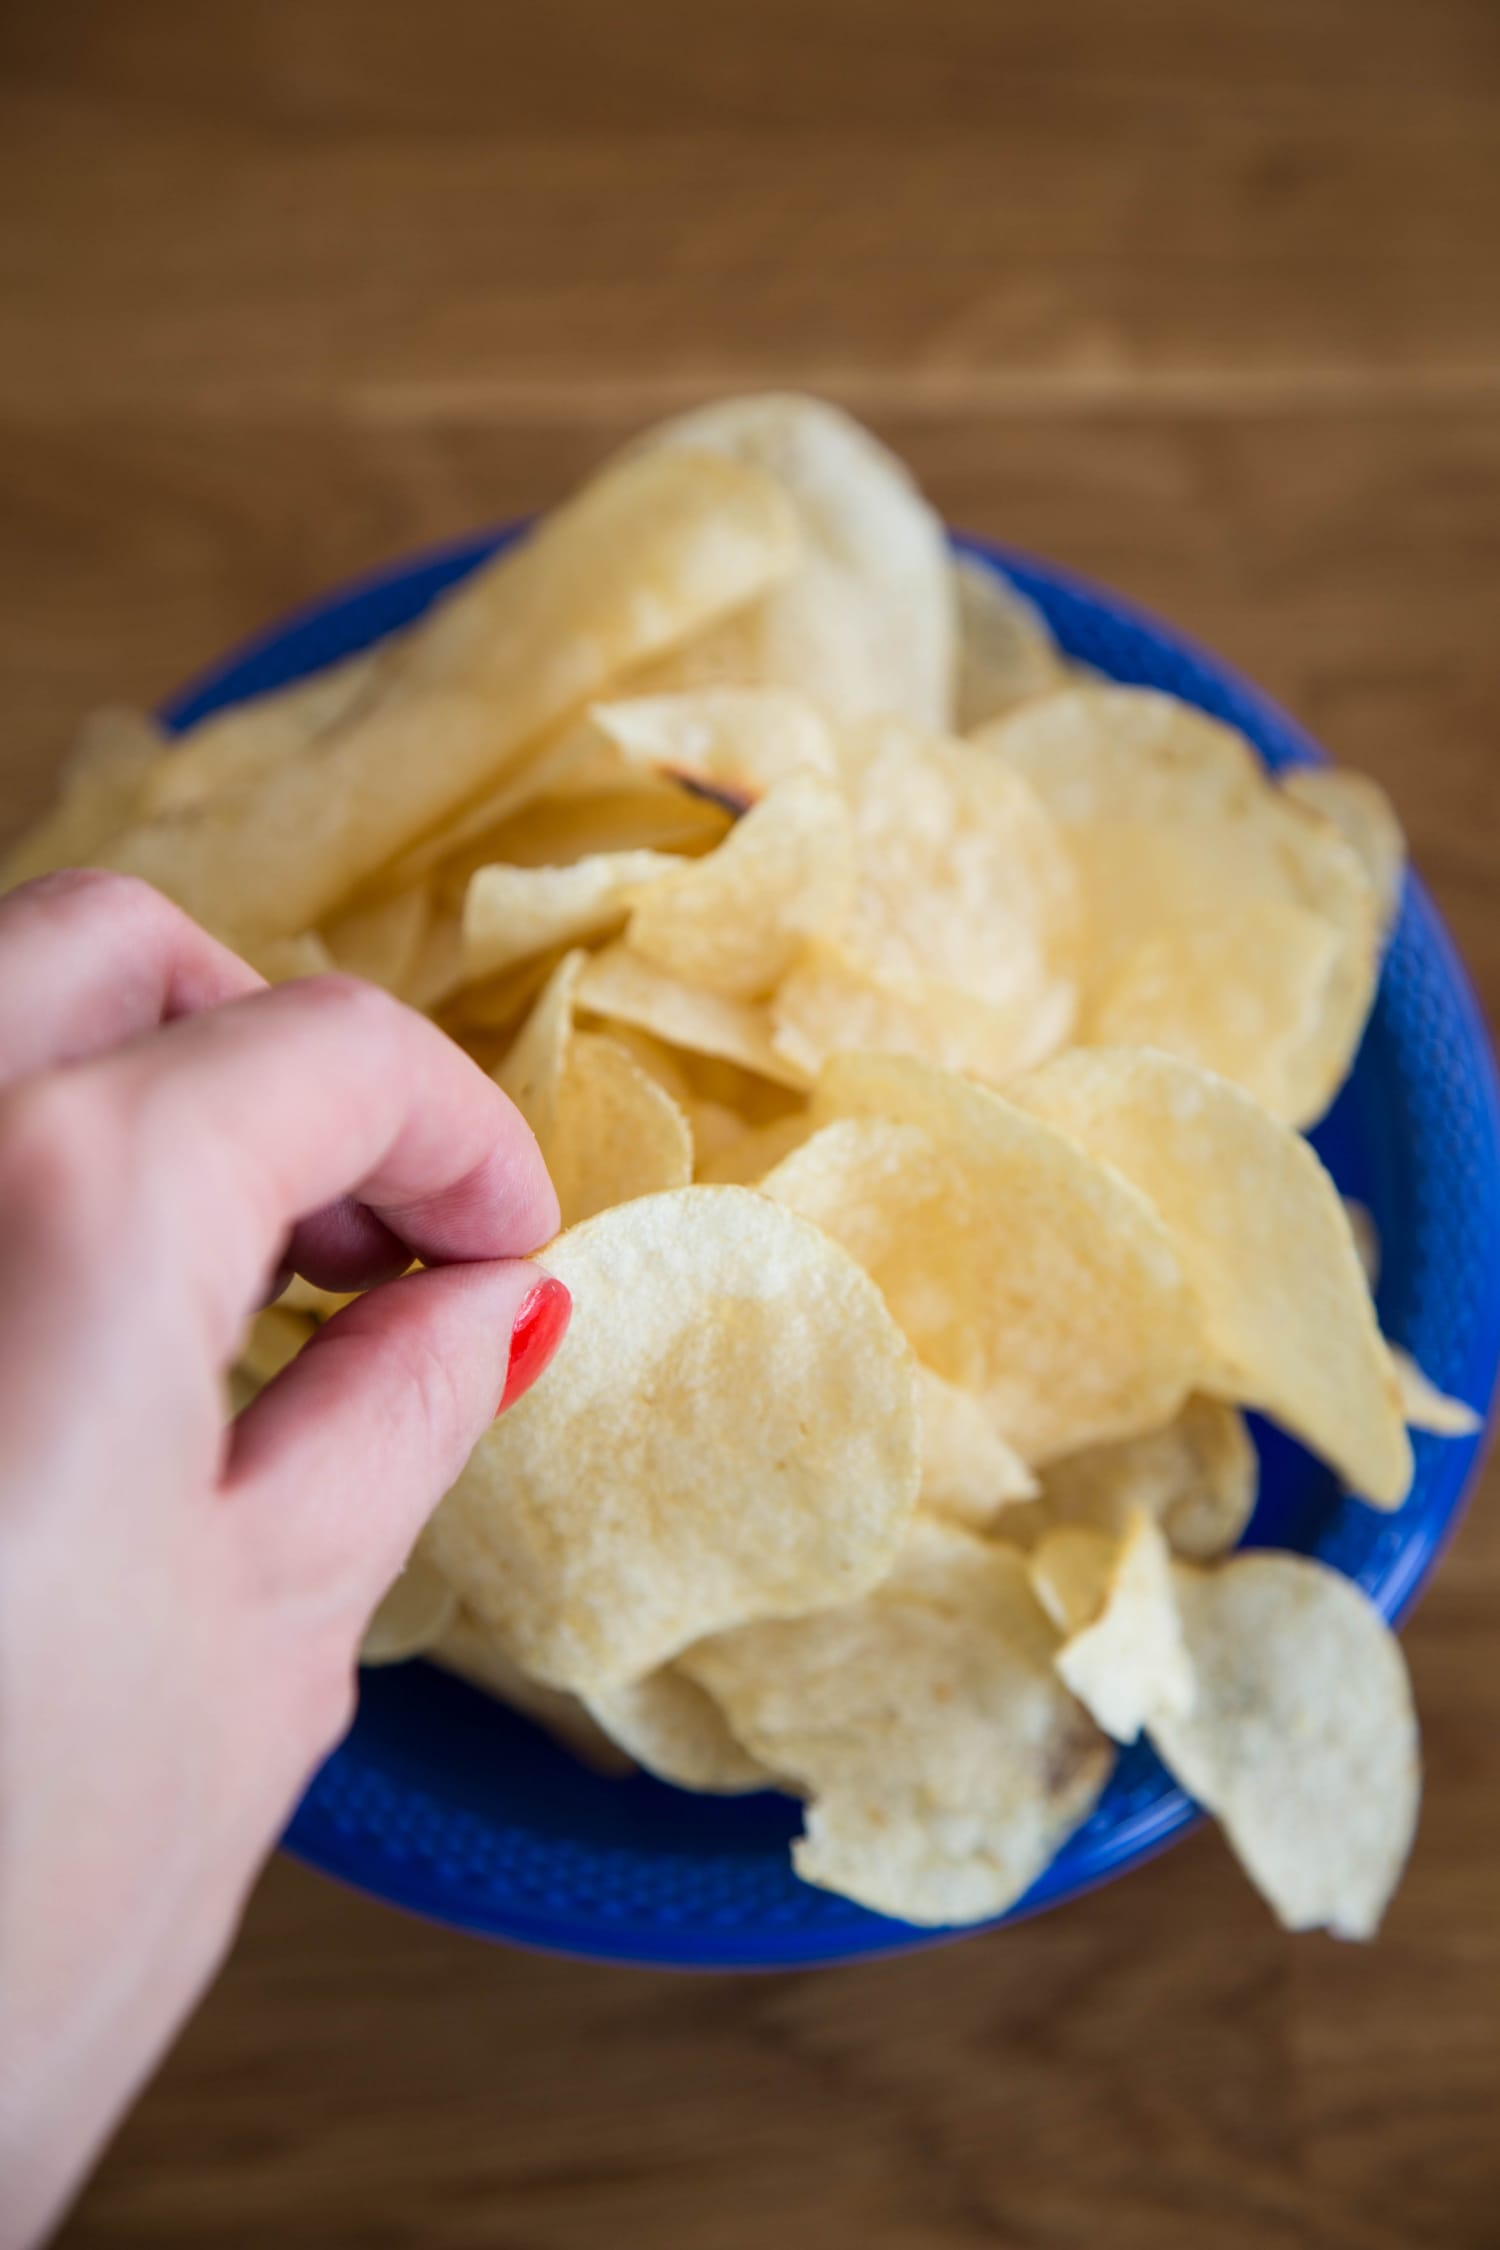 The Potato Chip Taste Test: We Tried 5 Brands and Here's Our